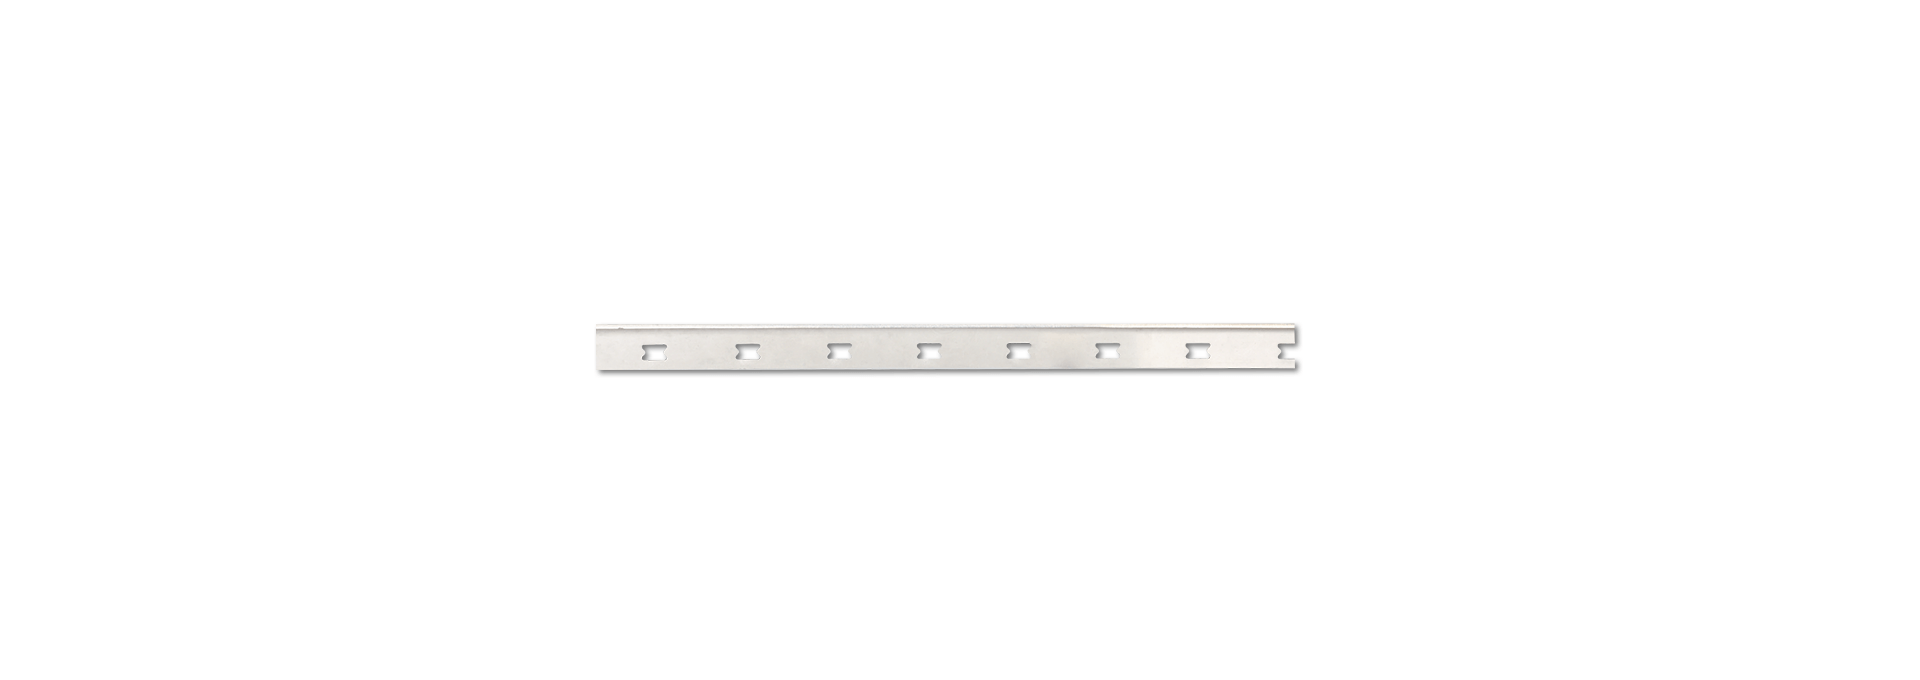 One-Sided Stainless Transition Joint Profiles PRFSS450-PGP001